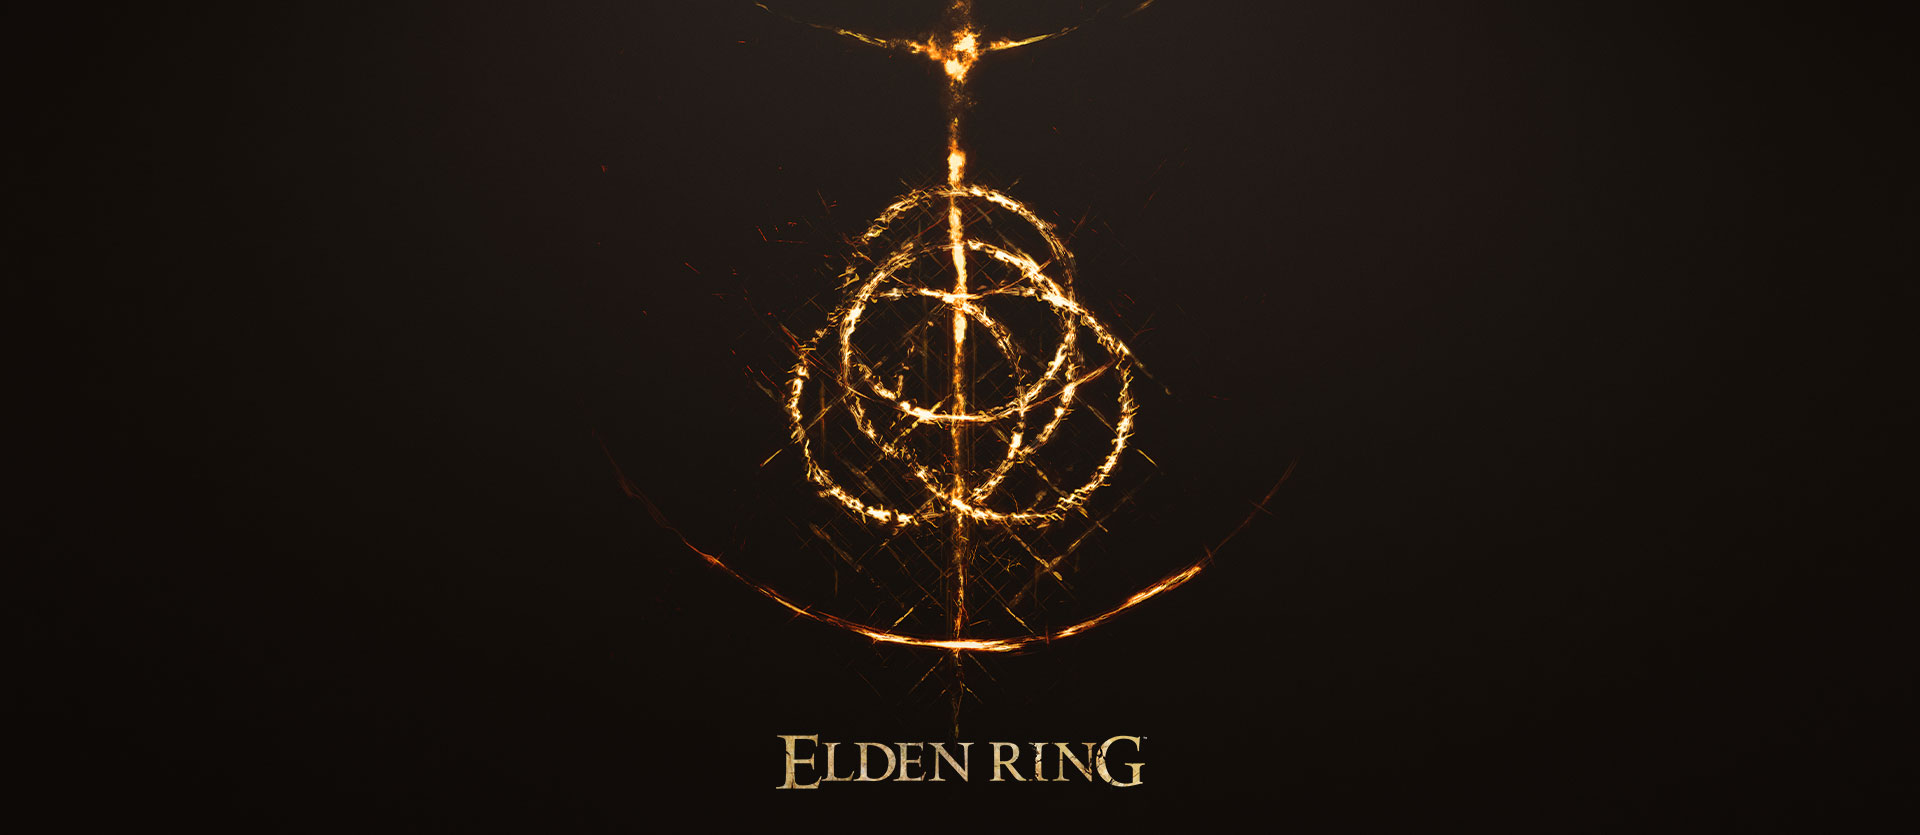 Elden Ring-logo